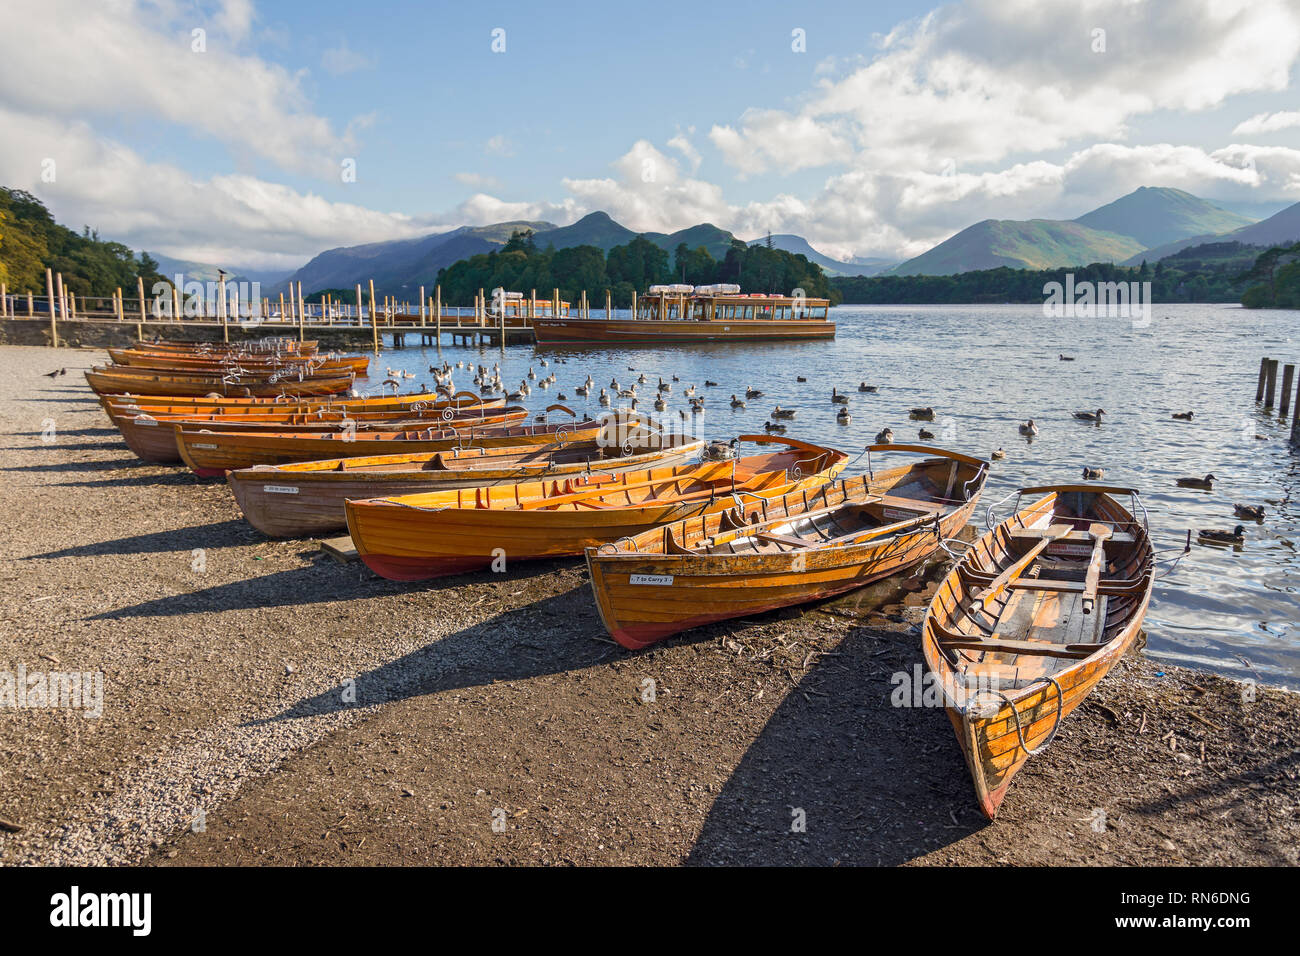 Row of wooden row boats lined up on the shore of Derwent water, Keswick, Cumbria. Stock Photo